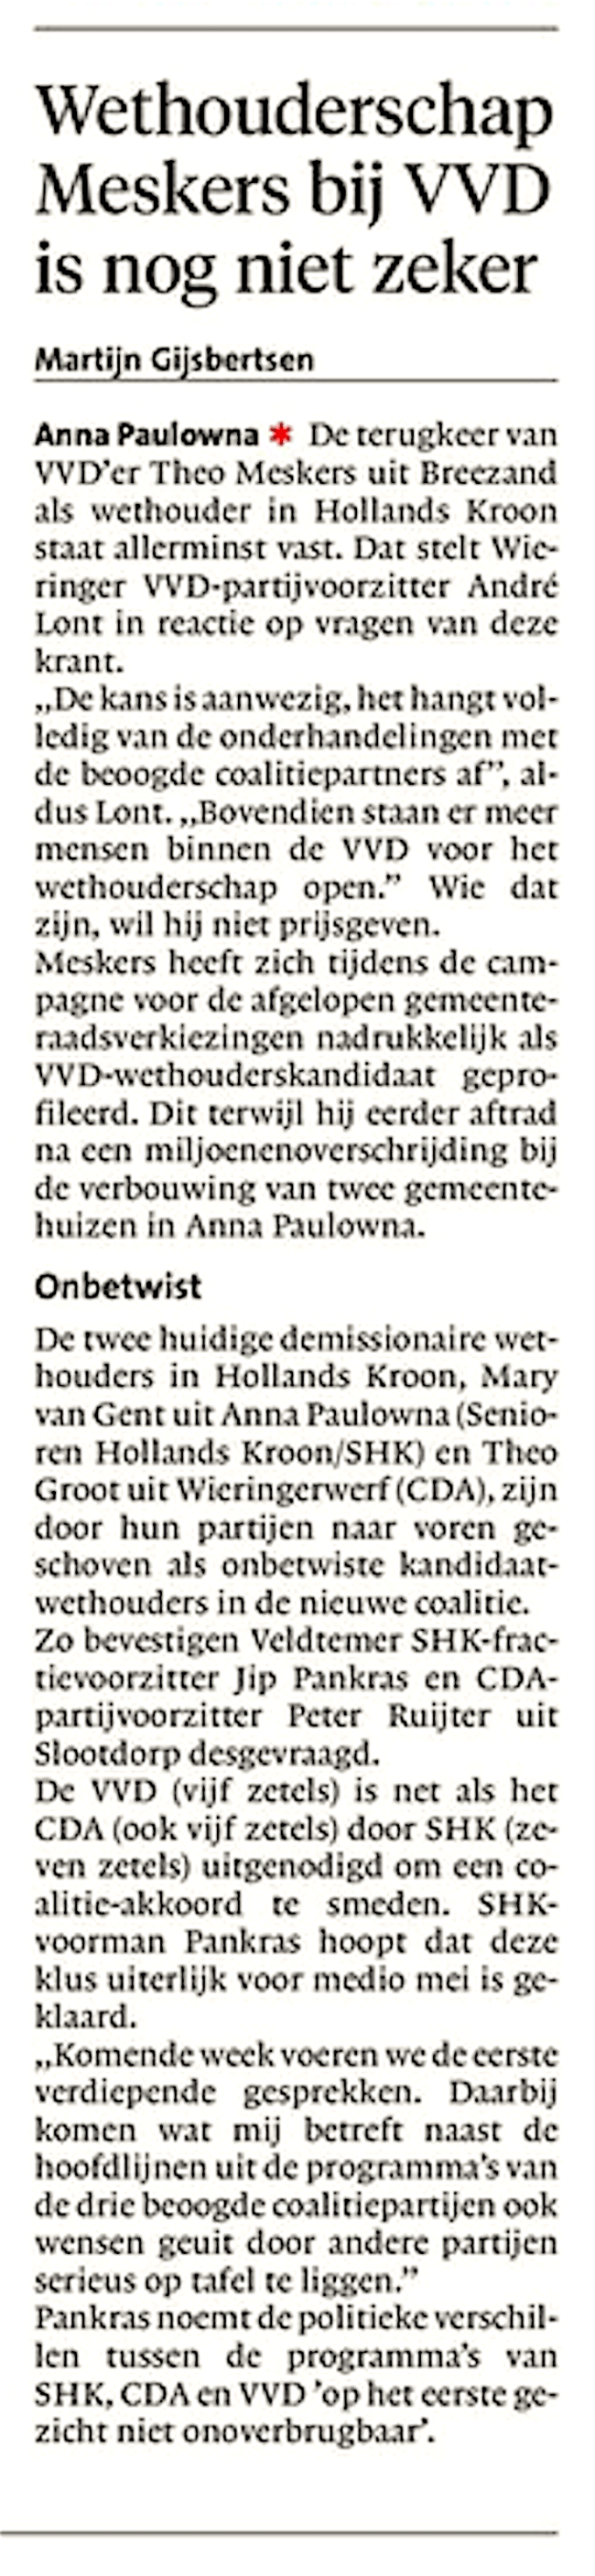 Schager Courant, 17 april 2018